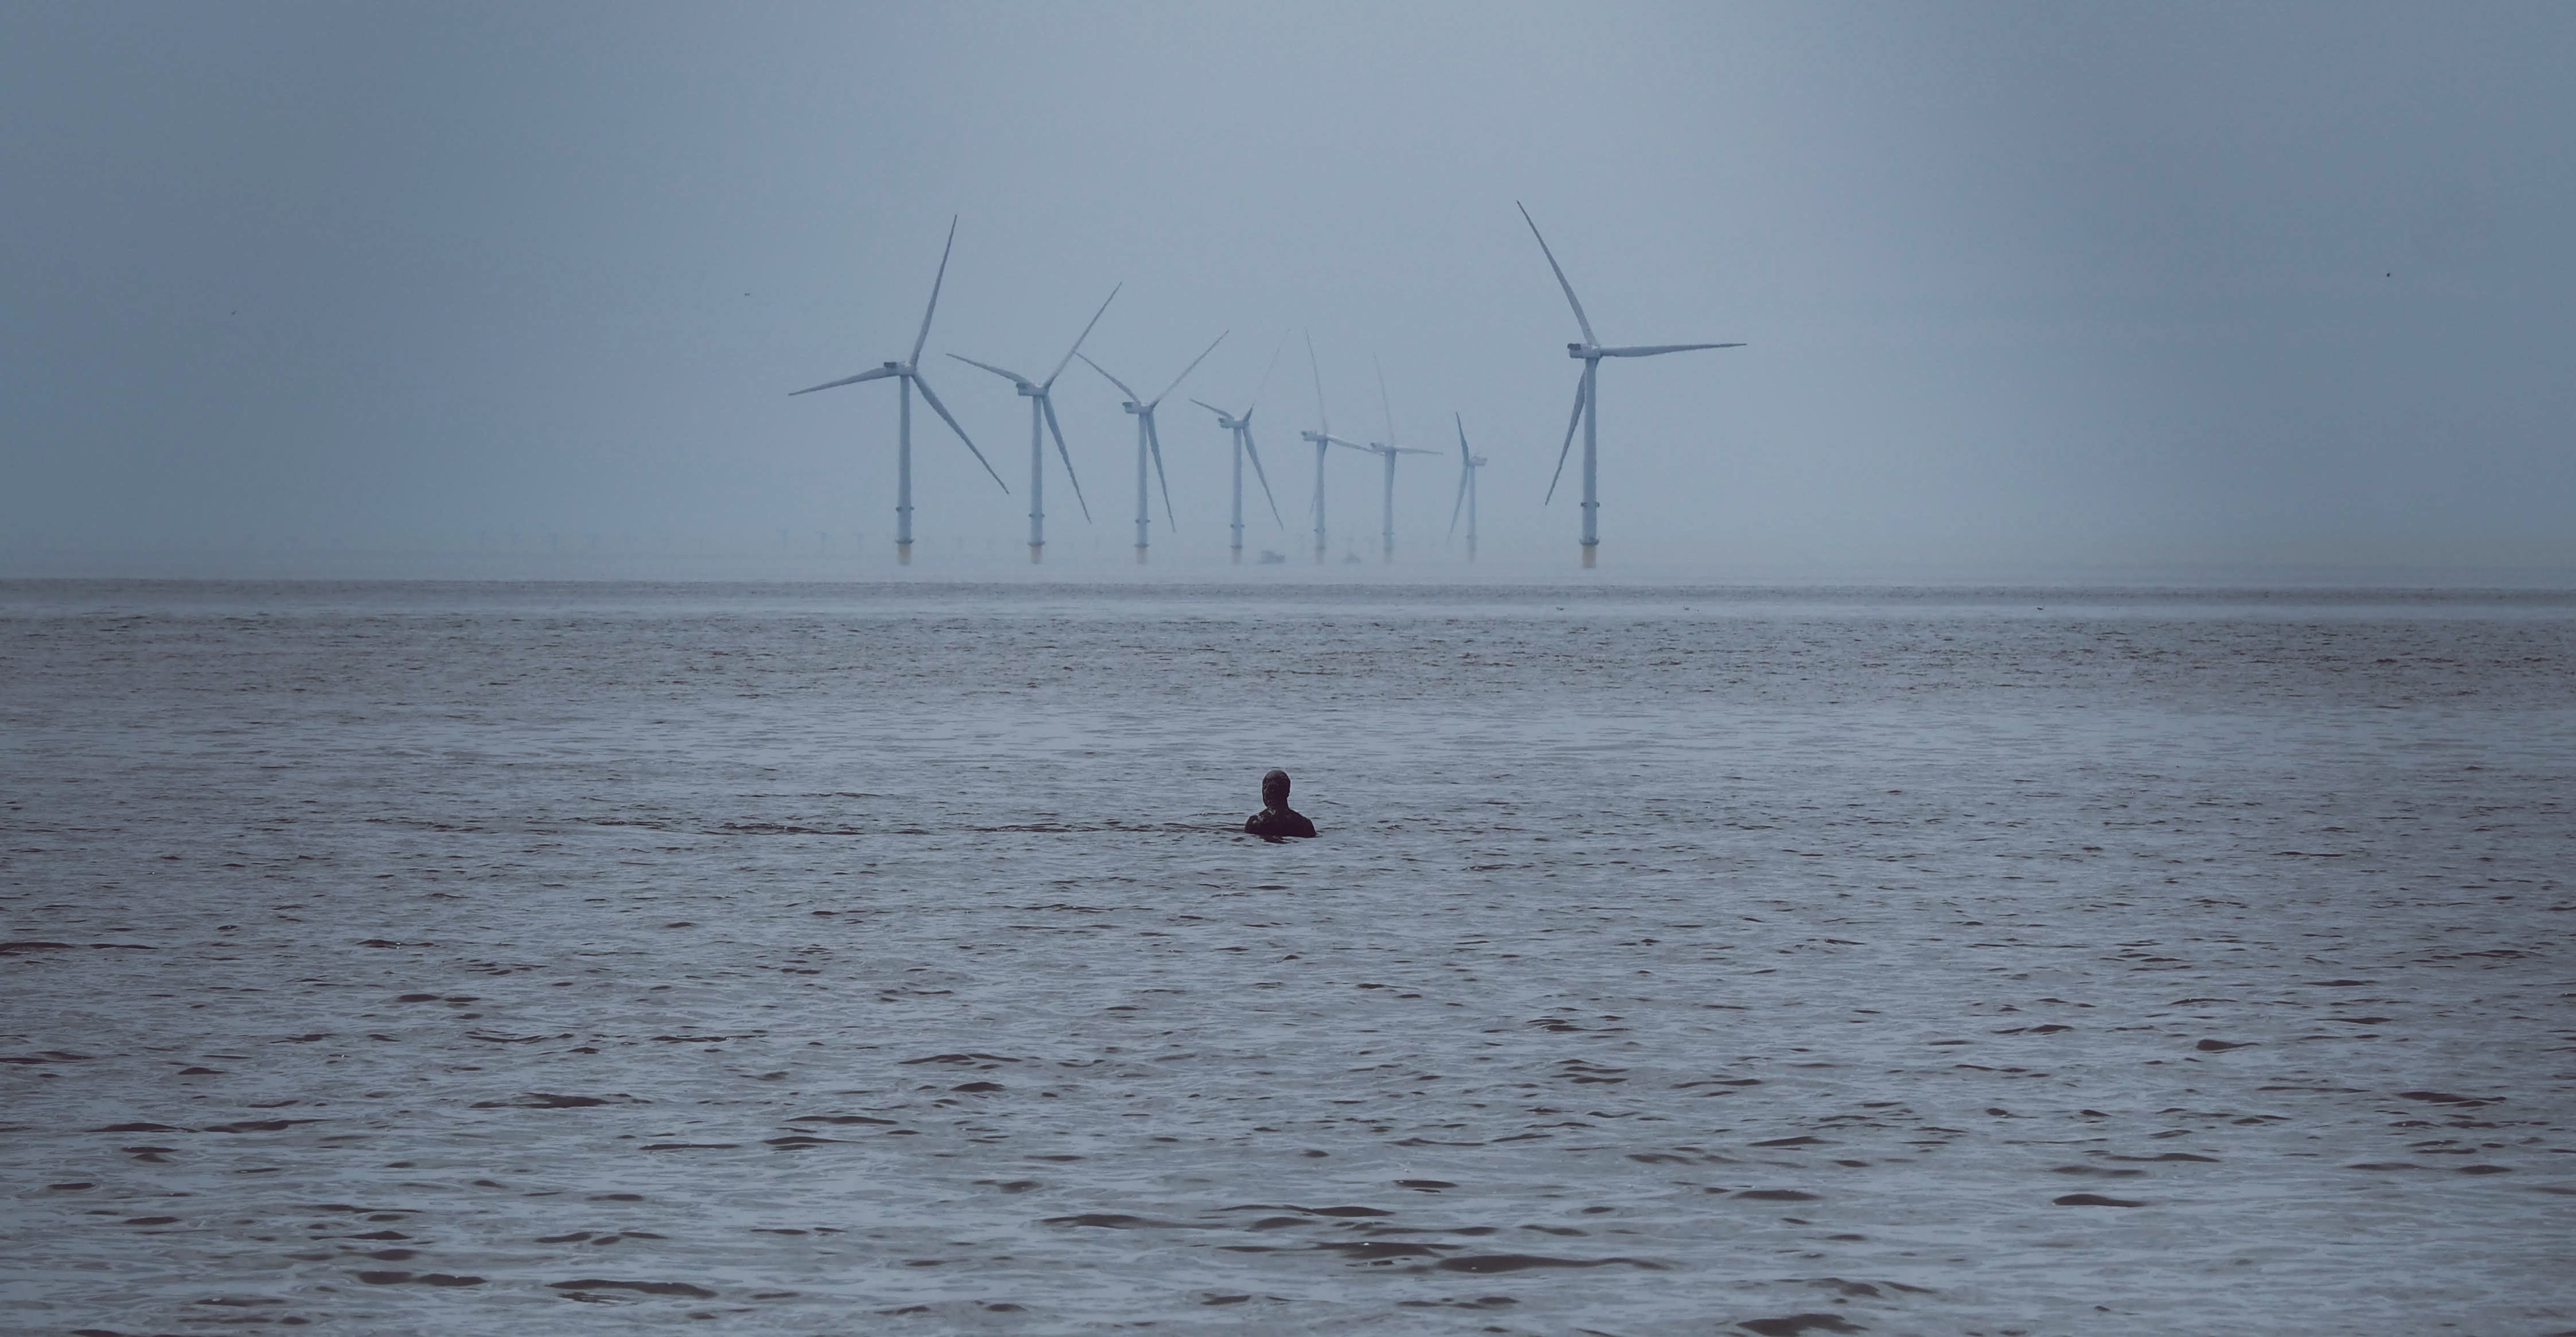 person swimming on water near windmills